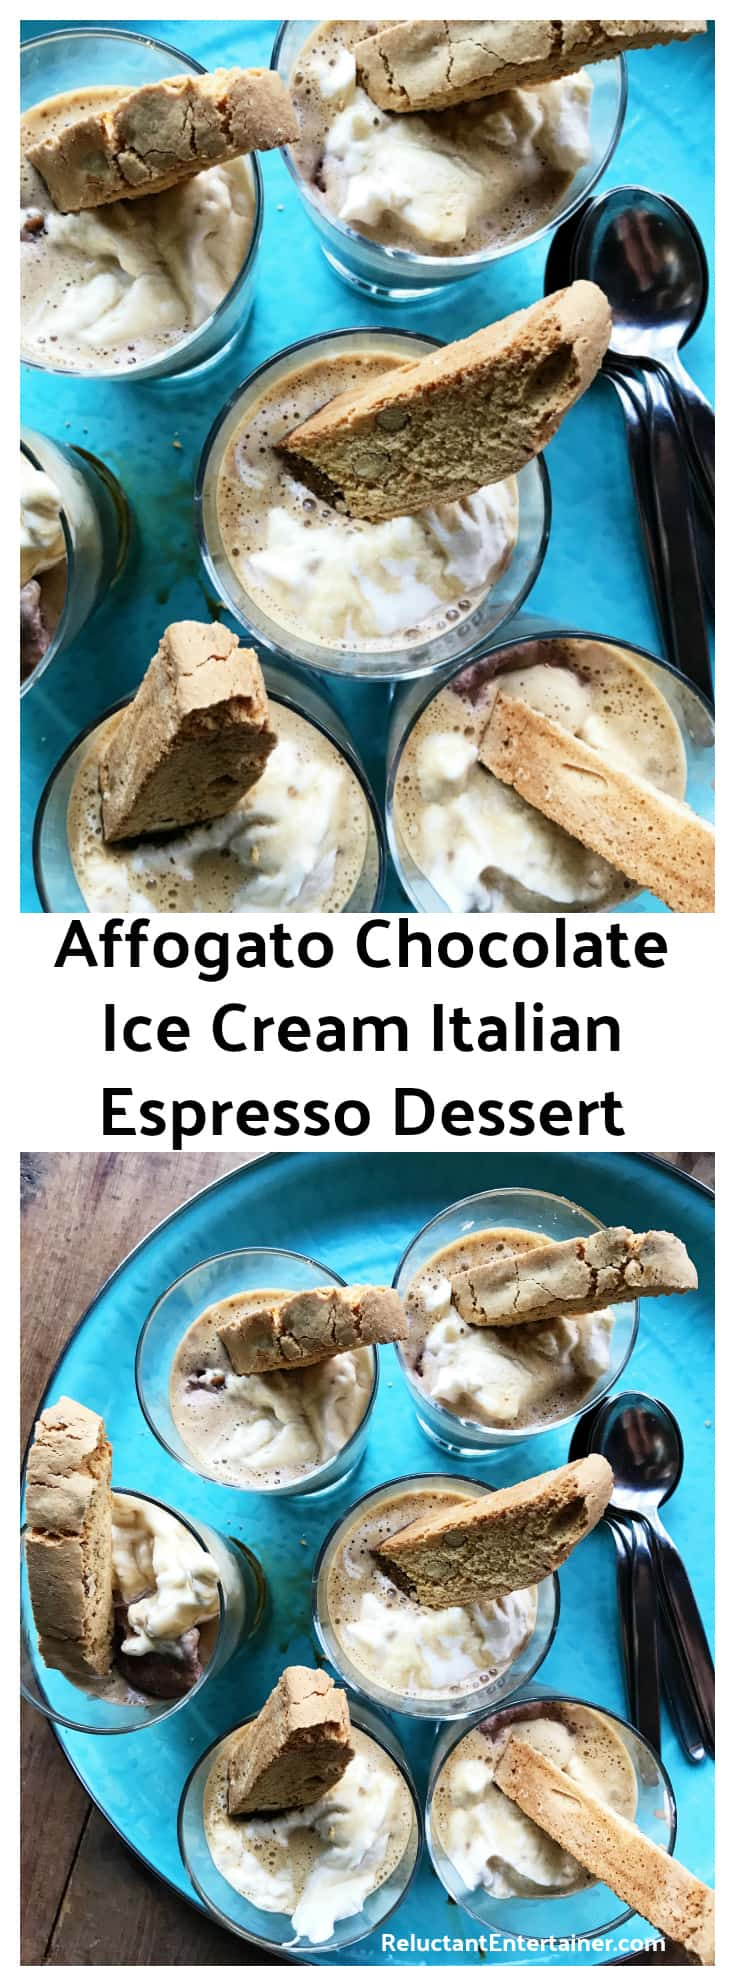 Affogato Chocolate Ice Cream Italian Espresso Dessert